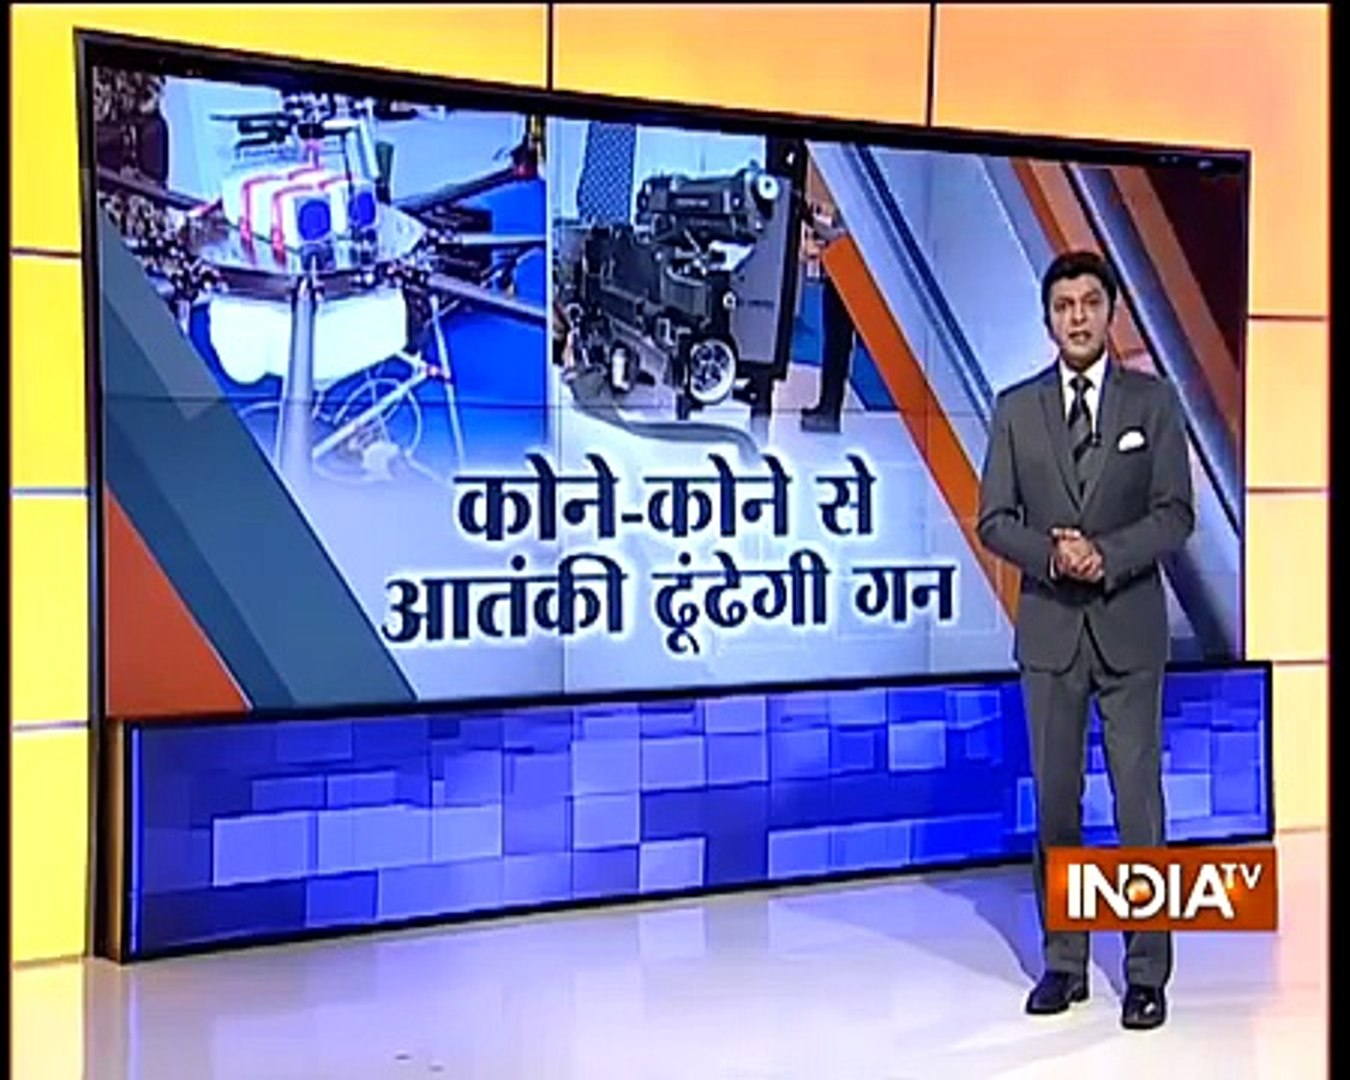 DRDO India Developed Latest Technology Robots For Indian Army To Counter Pakistani Terrorists